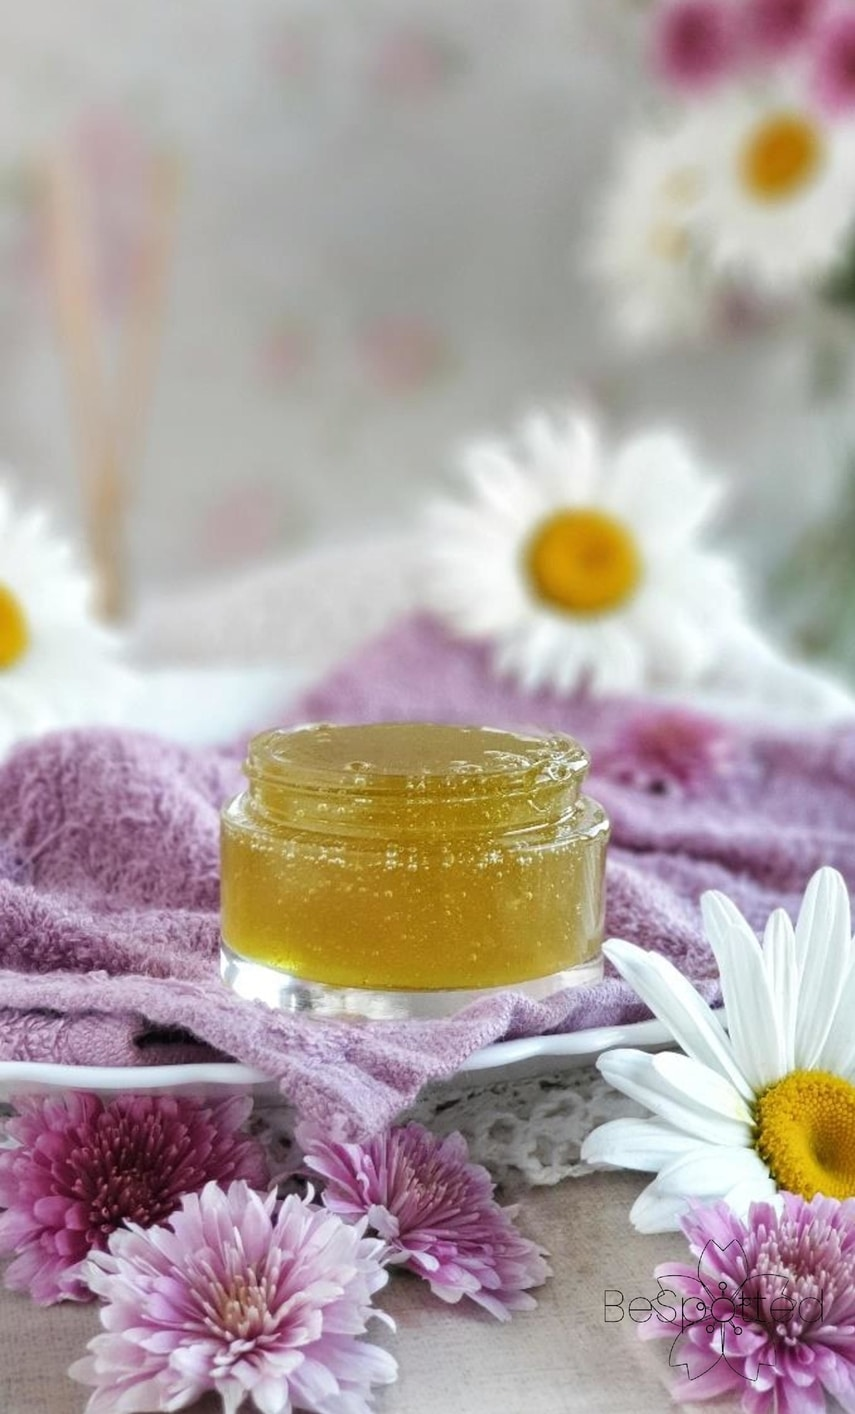 Freshly made aloe vera and honey mask for acne, skin imperfections and dull complexion